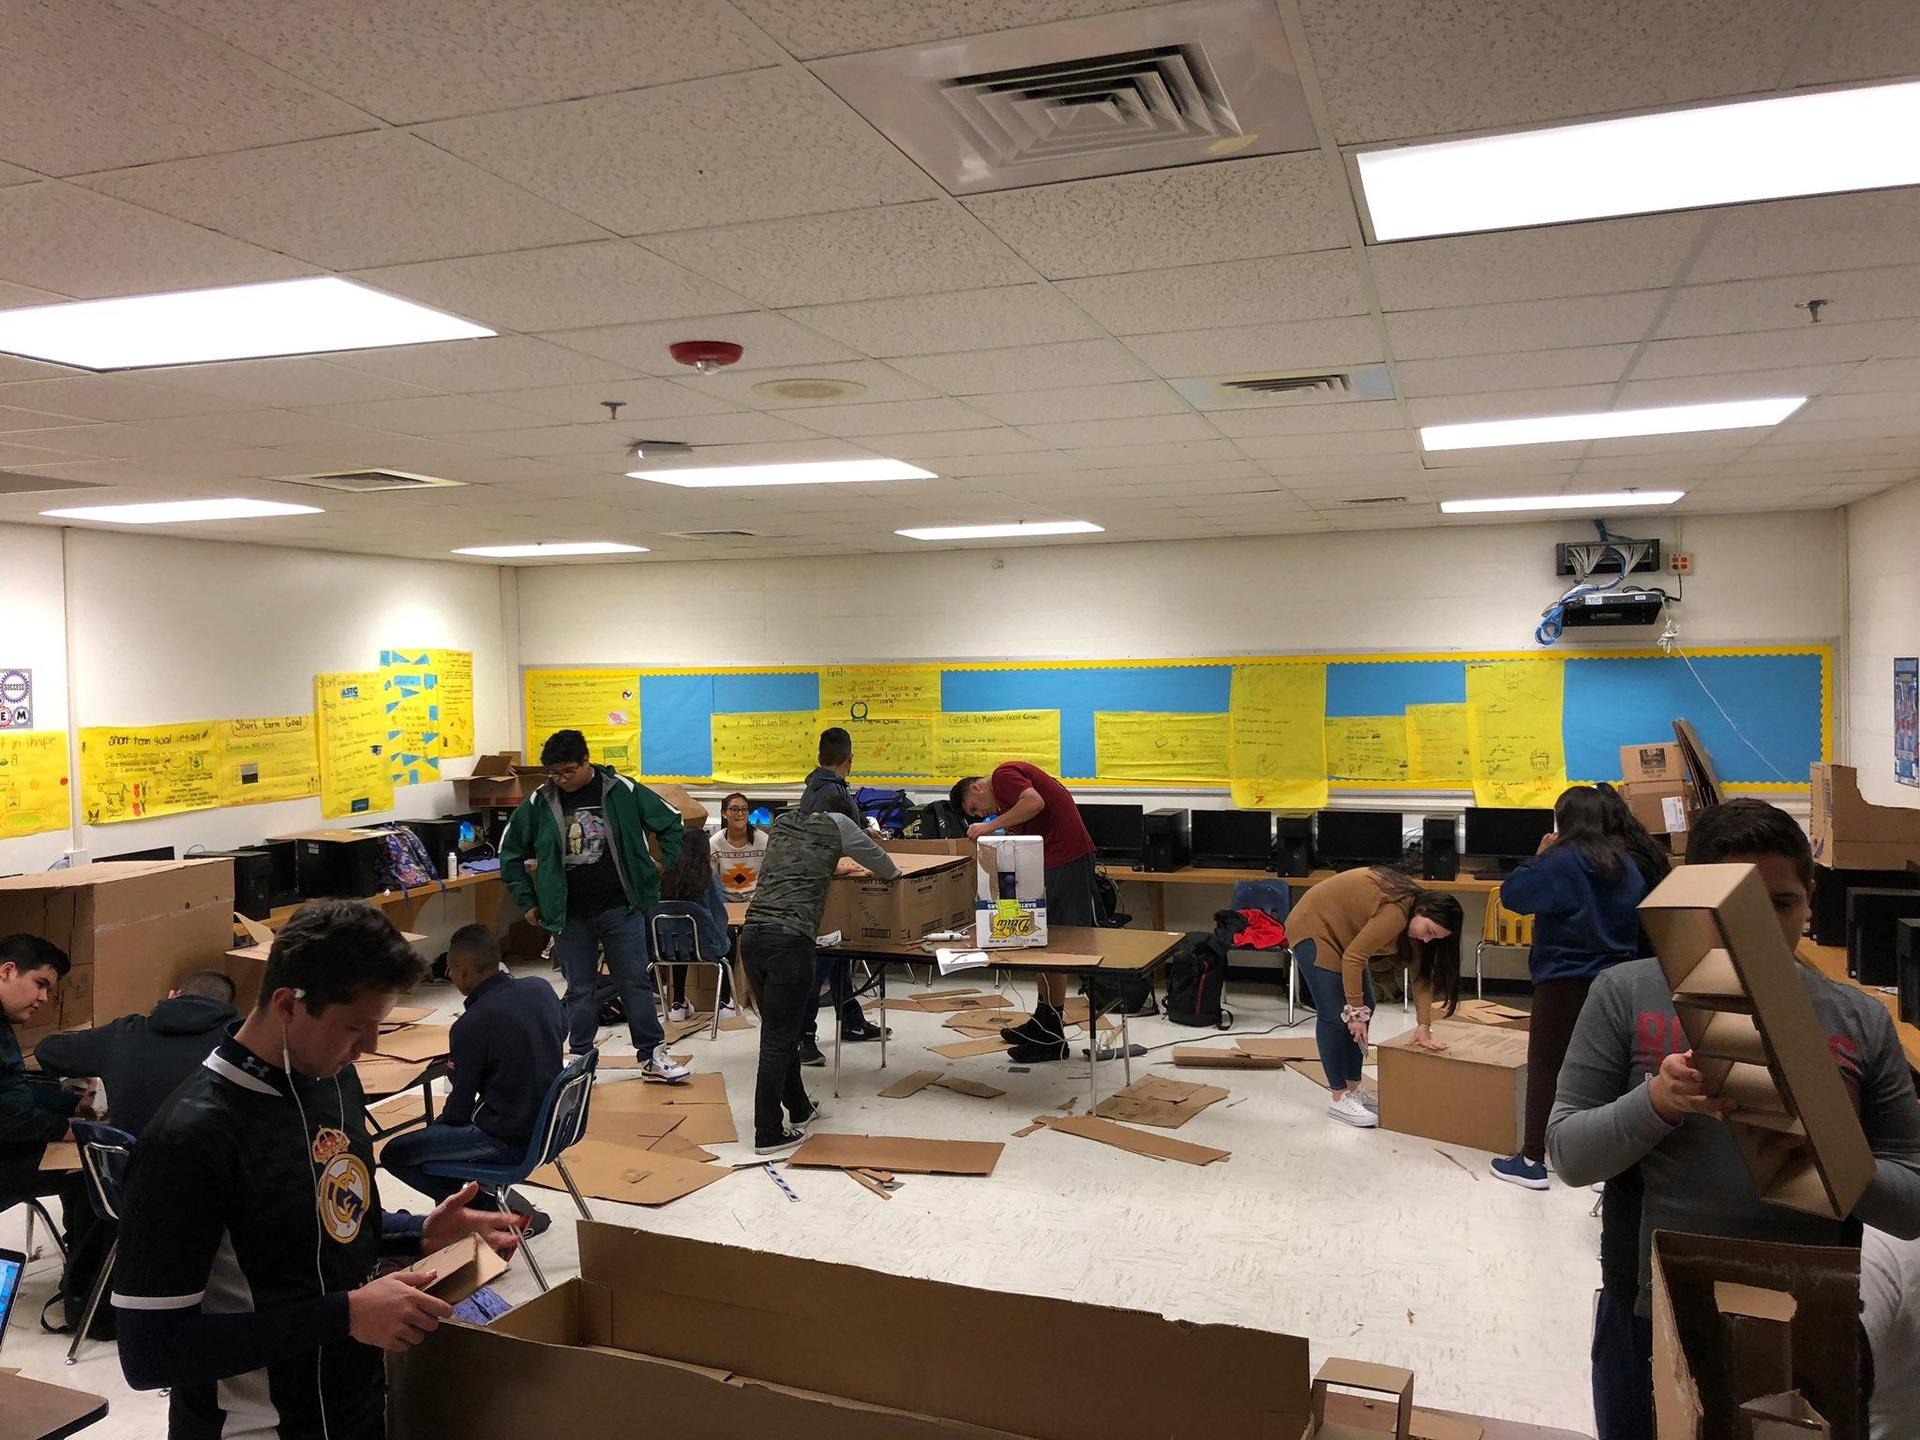 students engineering furniture from cardboard